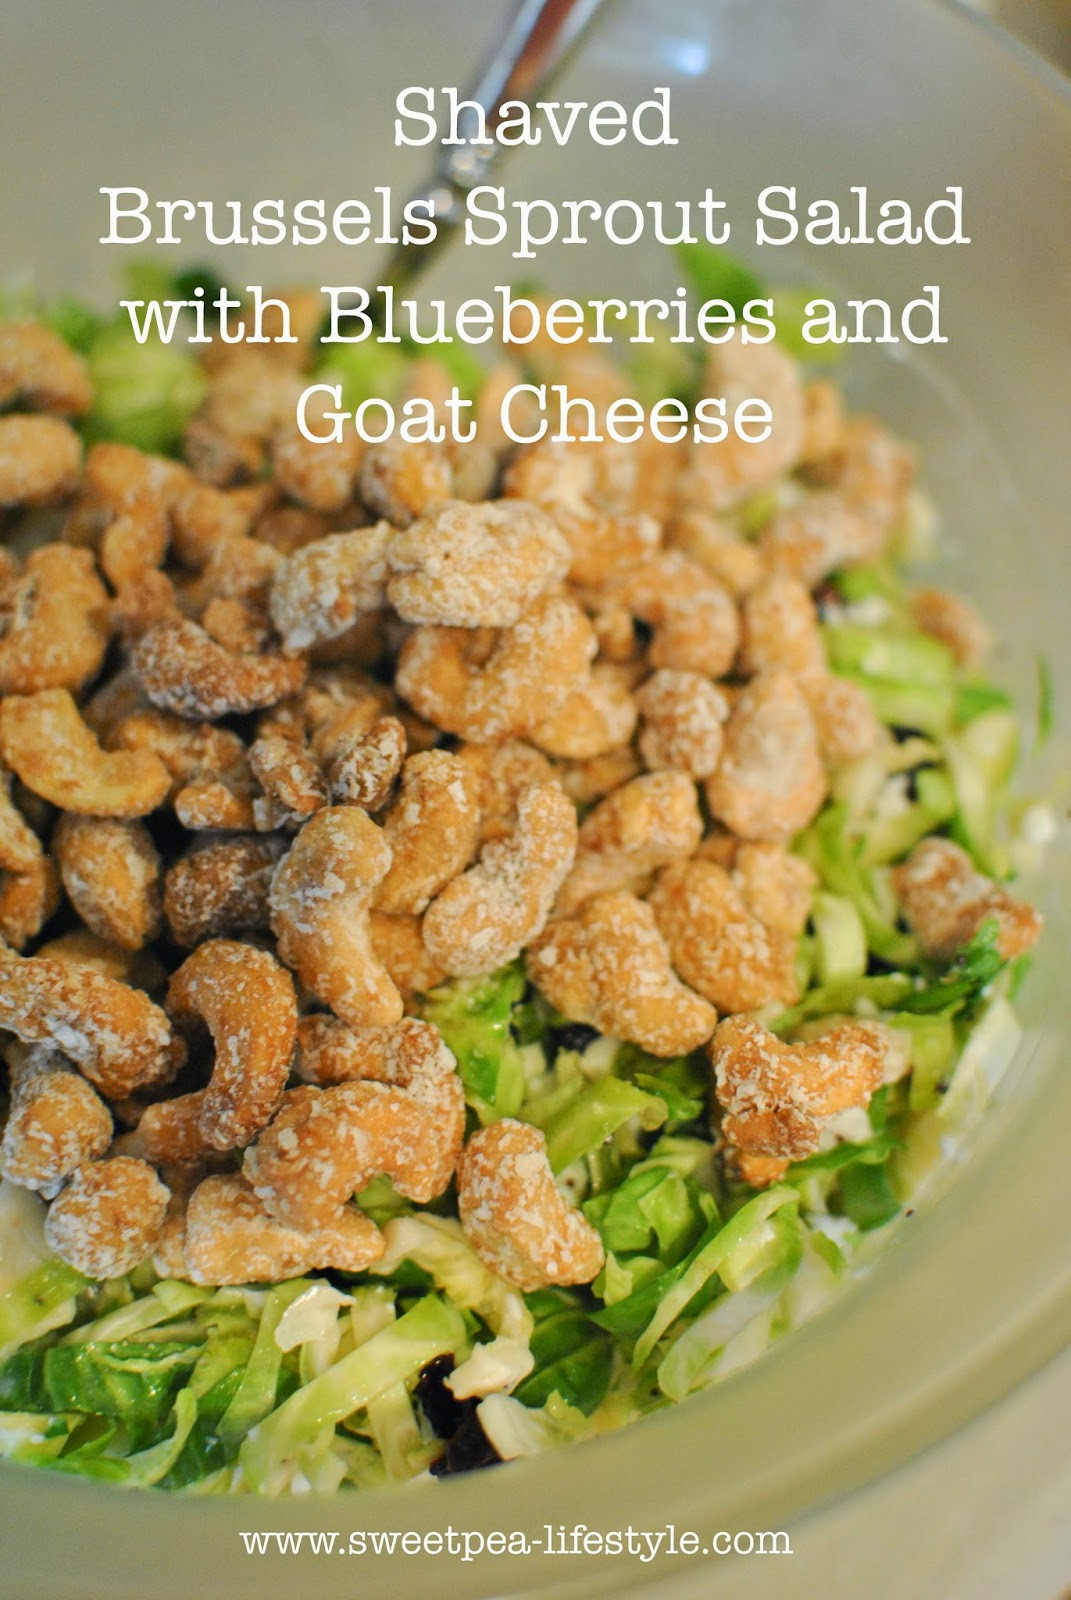 Summer with Trader Joe's Week #2 SALADS: Sweetpea's Brussels Sprout Salad with Blueberries and Goat Cheese